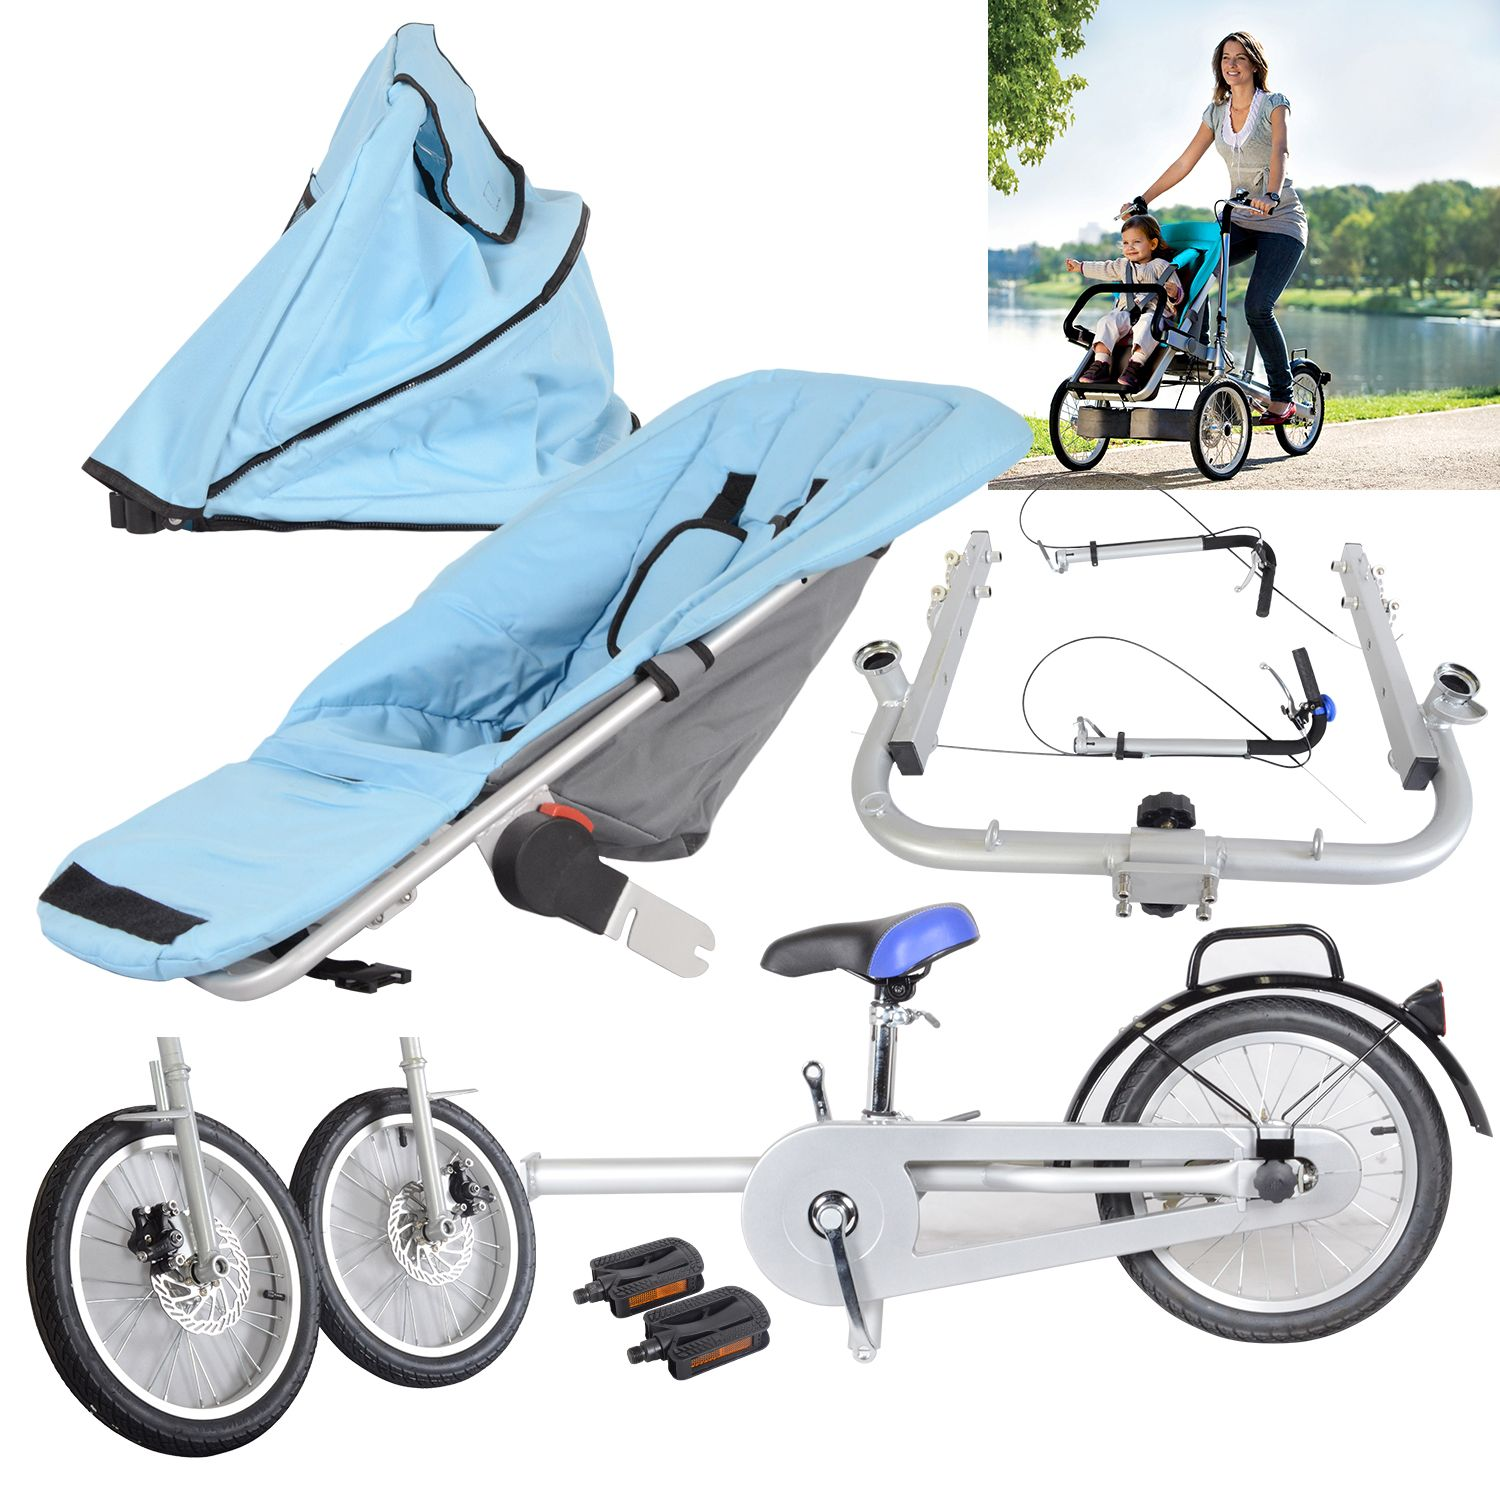 Baby Baby bike, Tricycle, Stroller